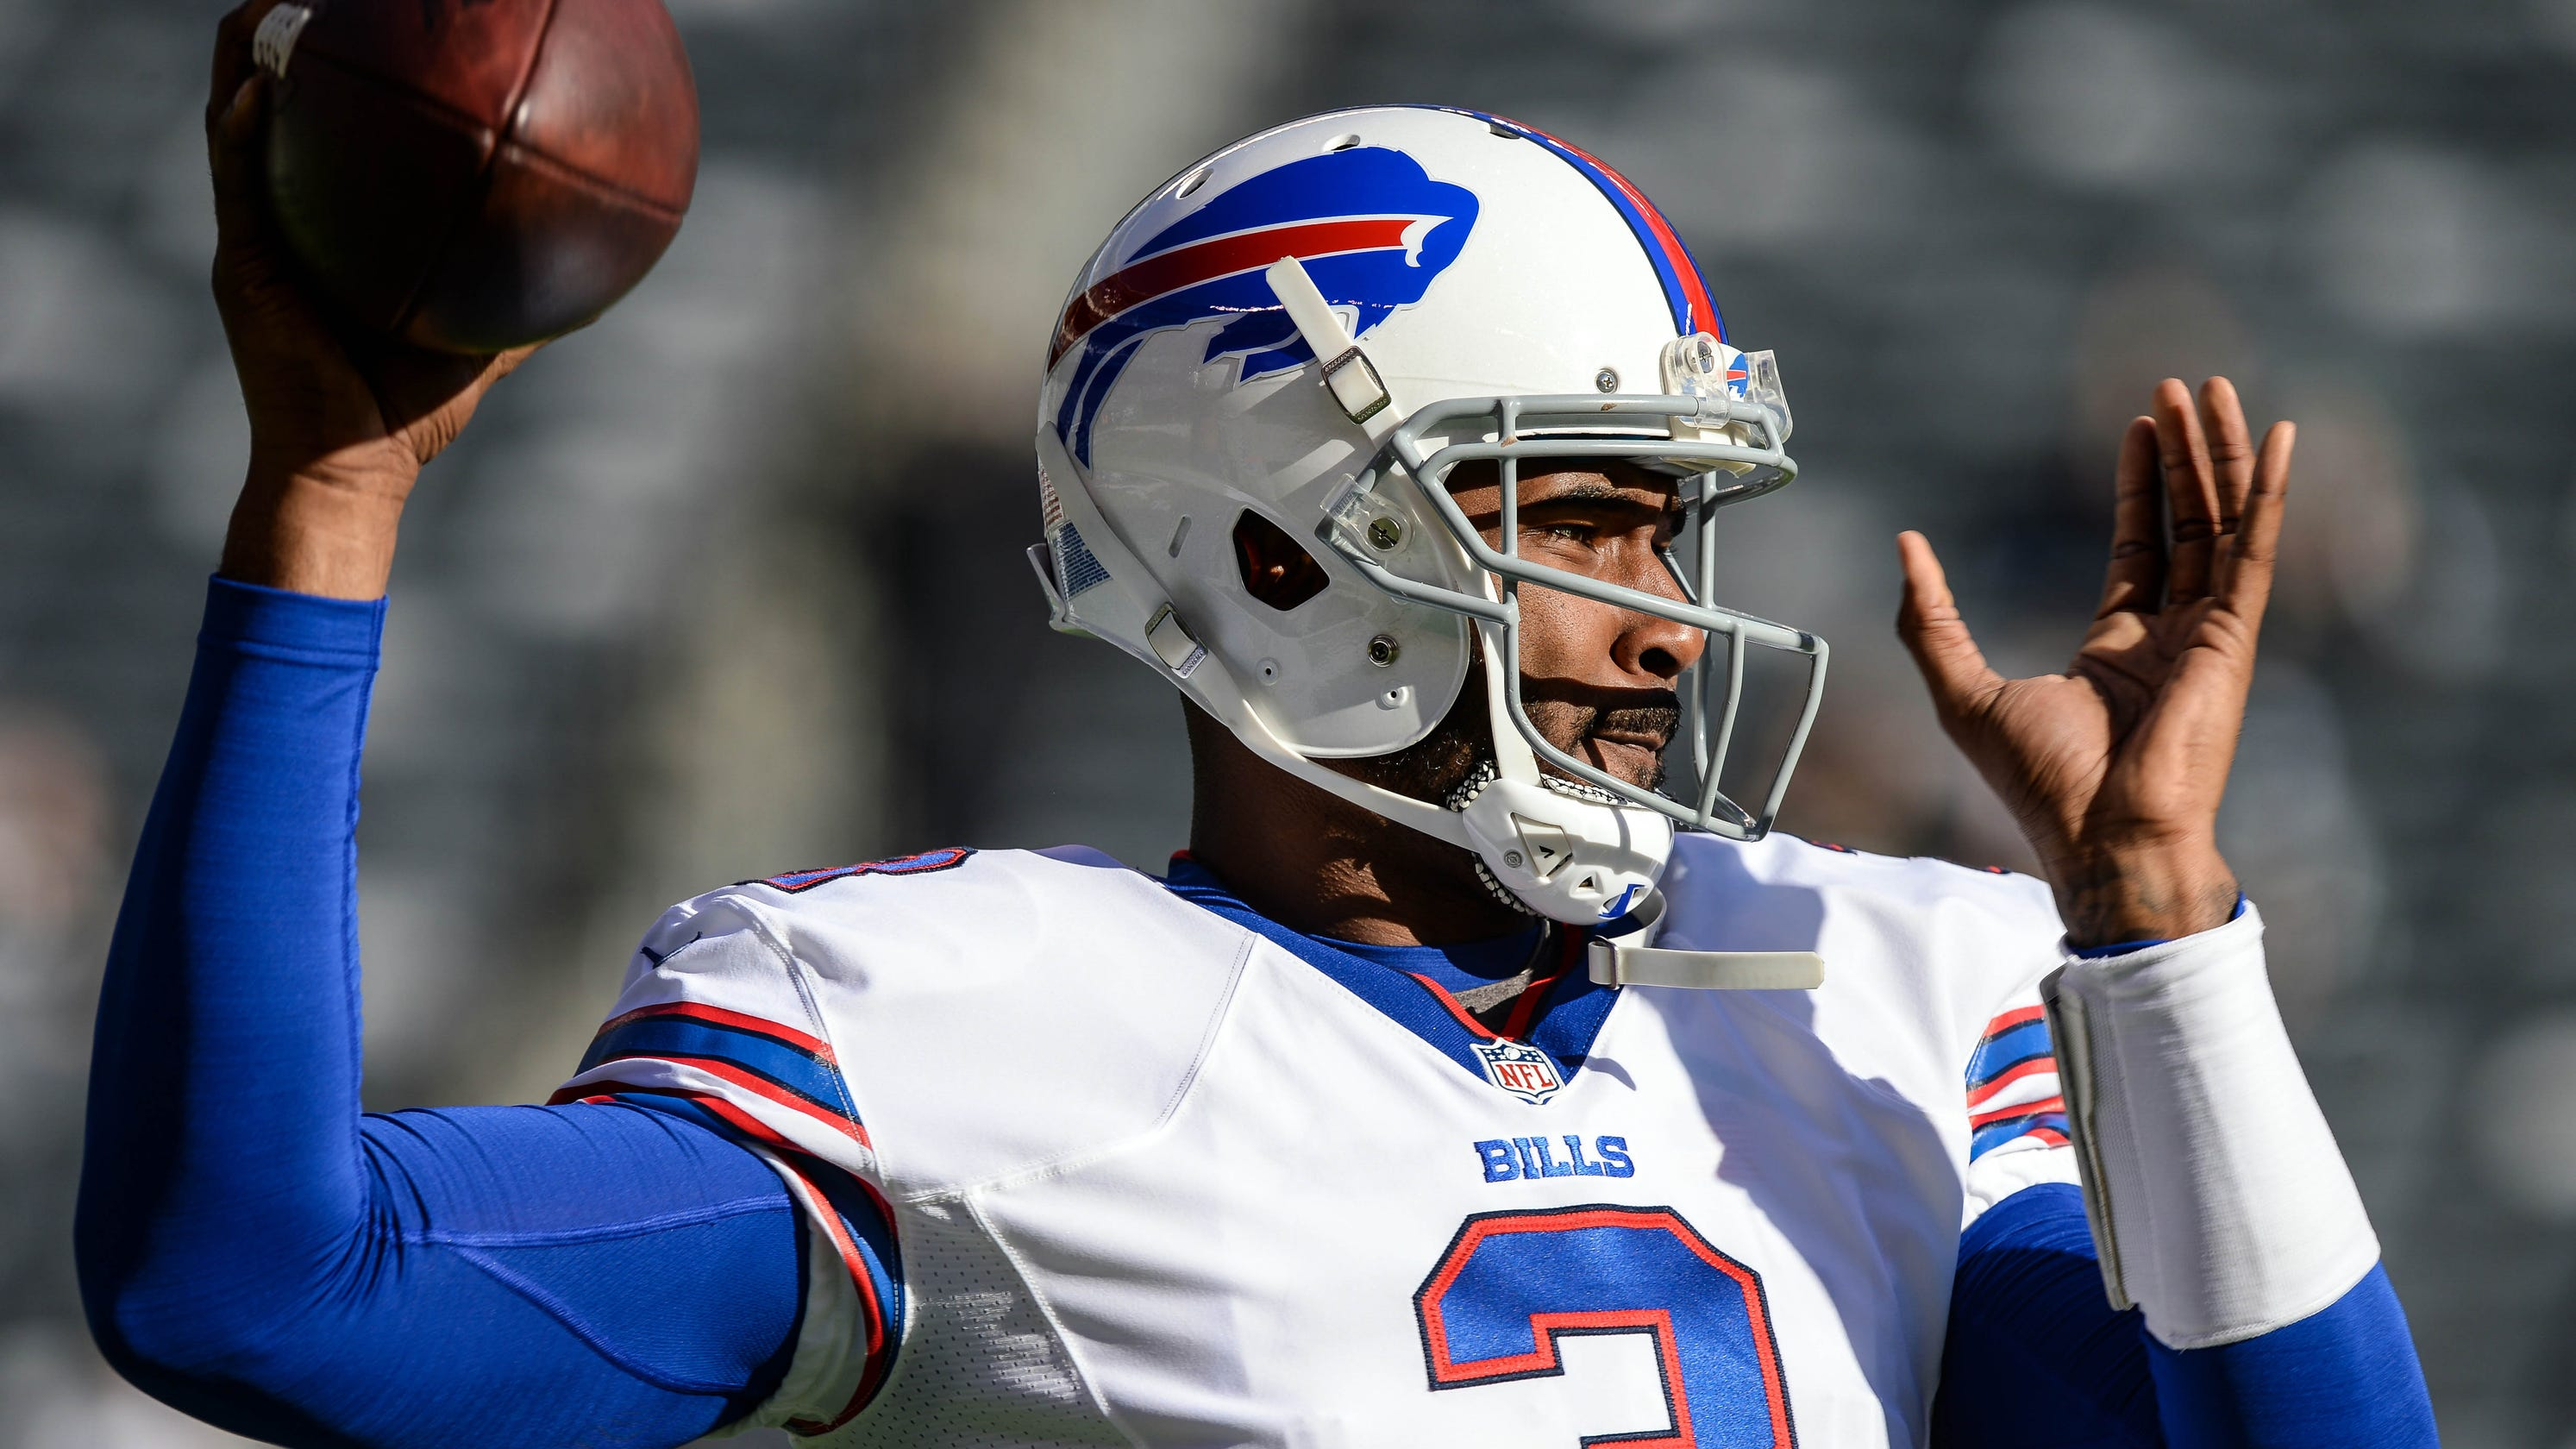 EJ Manuel, Buffalo Bills 2013 first-round QB pick, retires from NFL